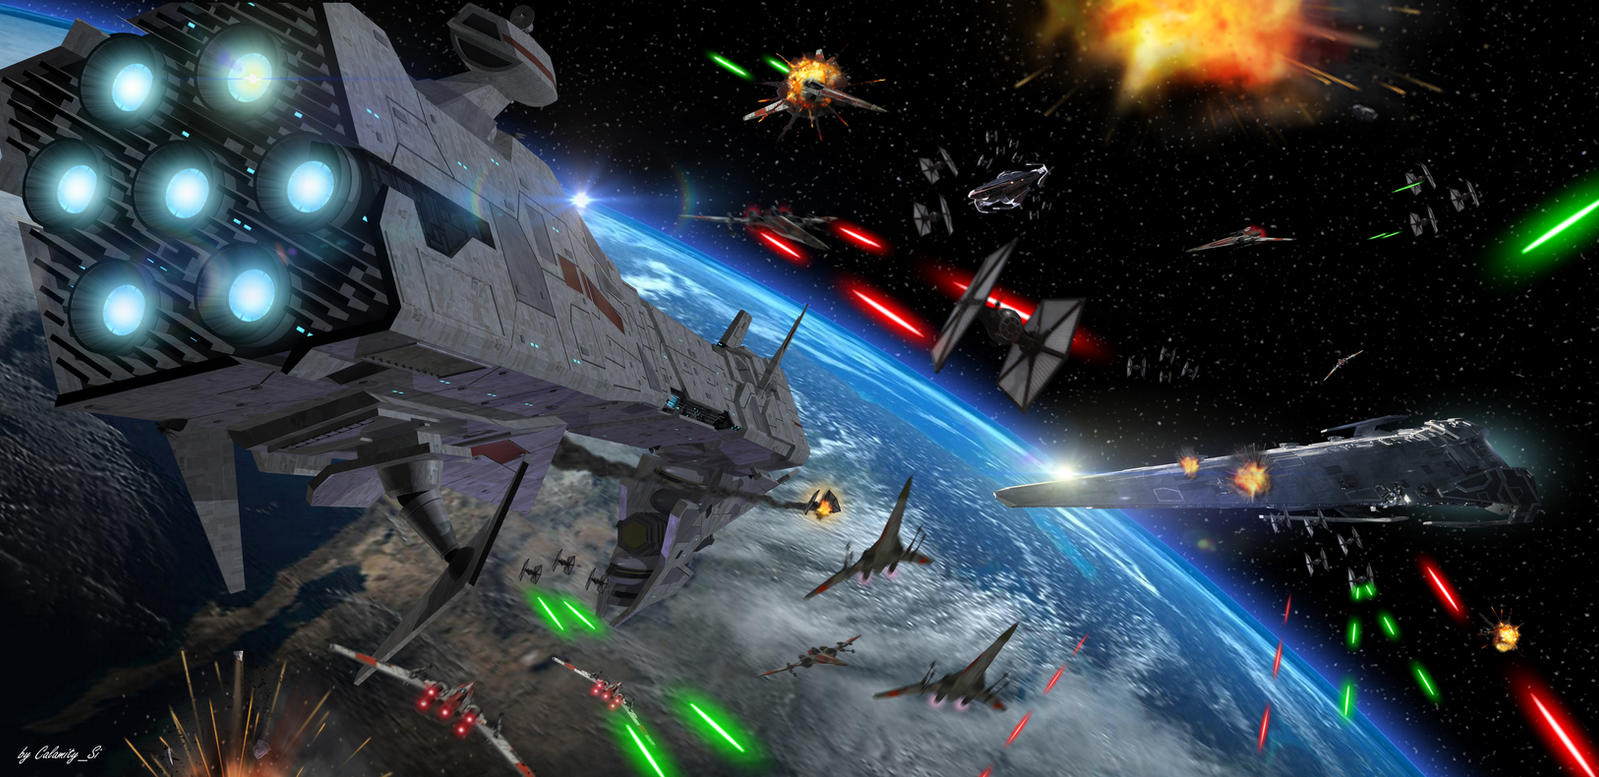 Star Wars Space Battle by calamitySi on DeviantArt